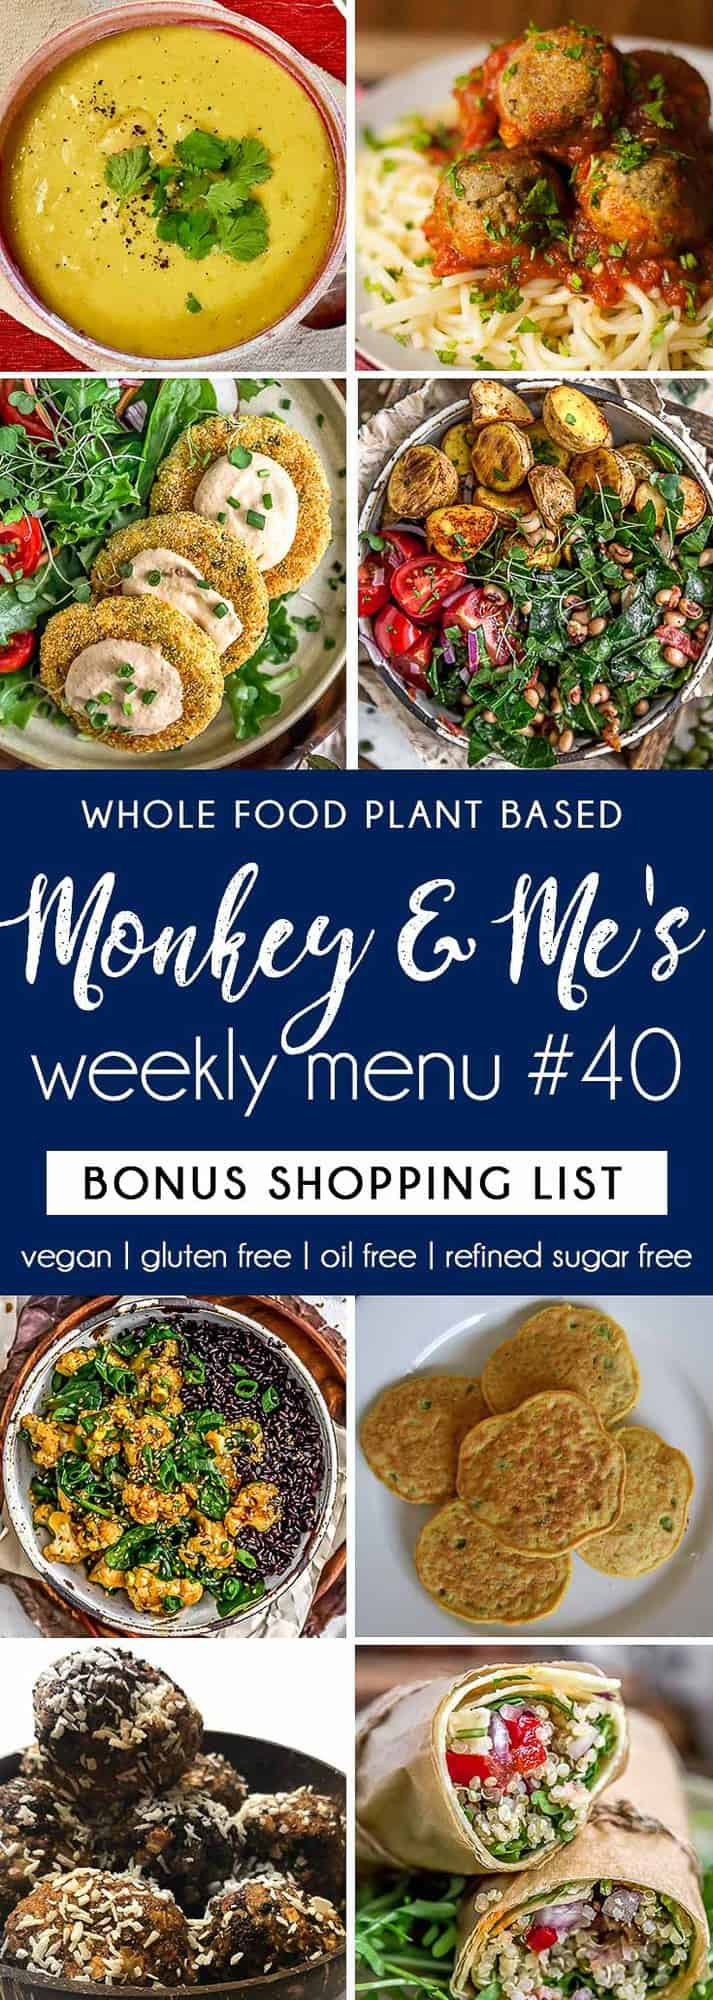 Monkey and Me's Menu 40 featuring 8 recipes